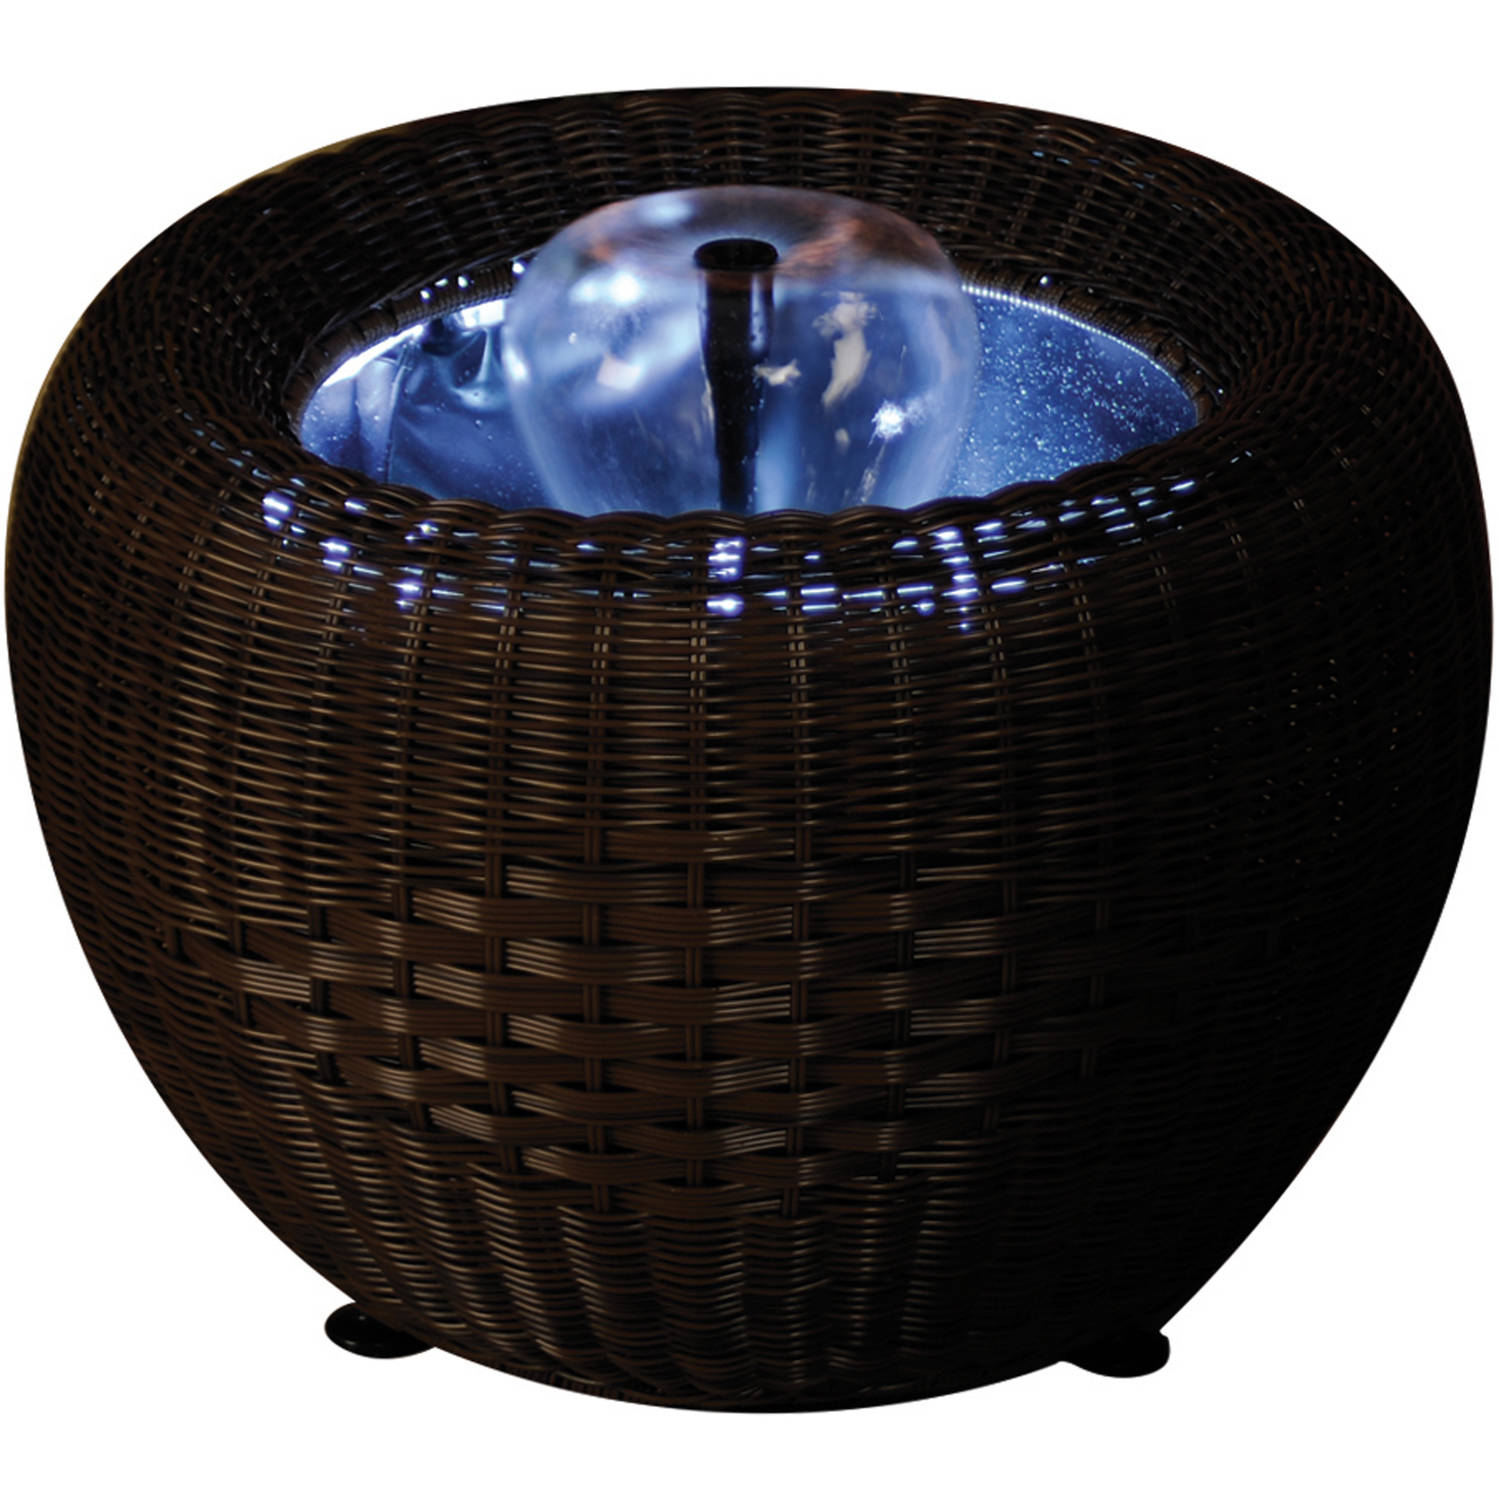 Gardenique Patio Pond, Mocha Wicker Urn with White LED Light by Pond Equipment